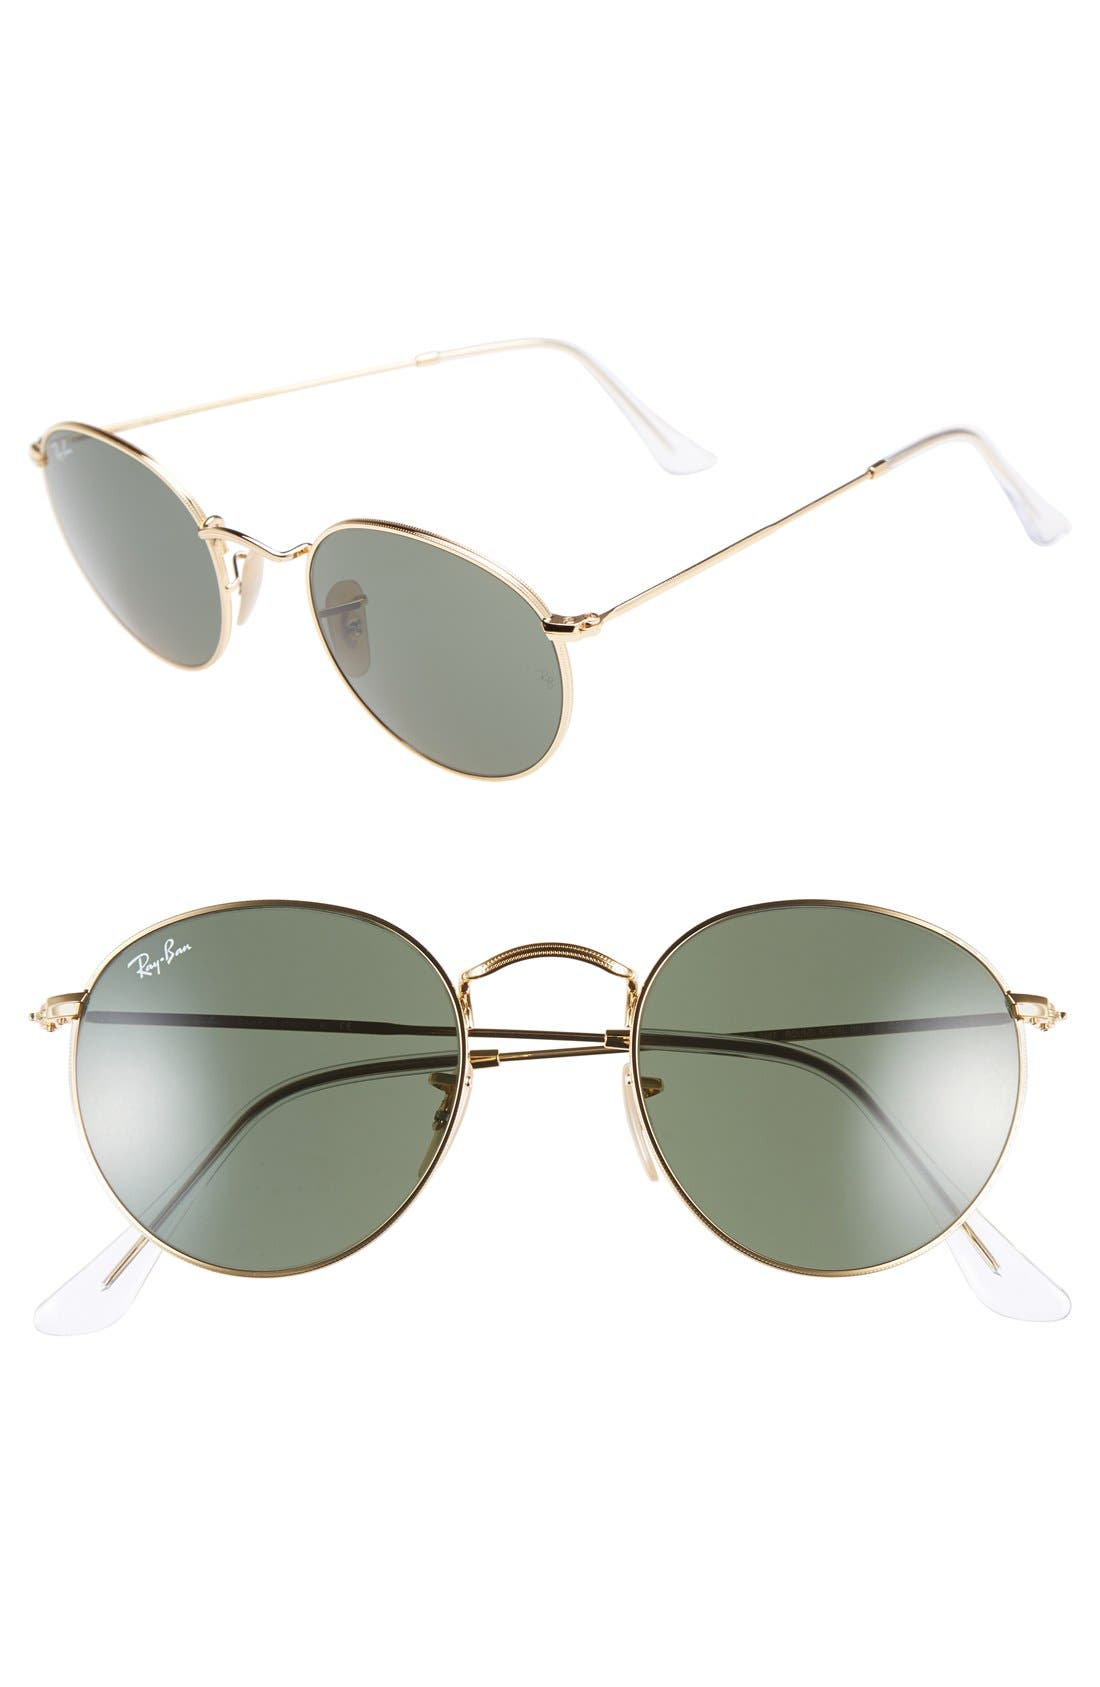 Icons 50mm Round Metal Sunglasses,                             Main thumbnail 1, color,                             GOLD/ GREEN